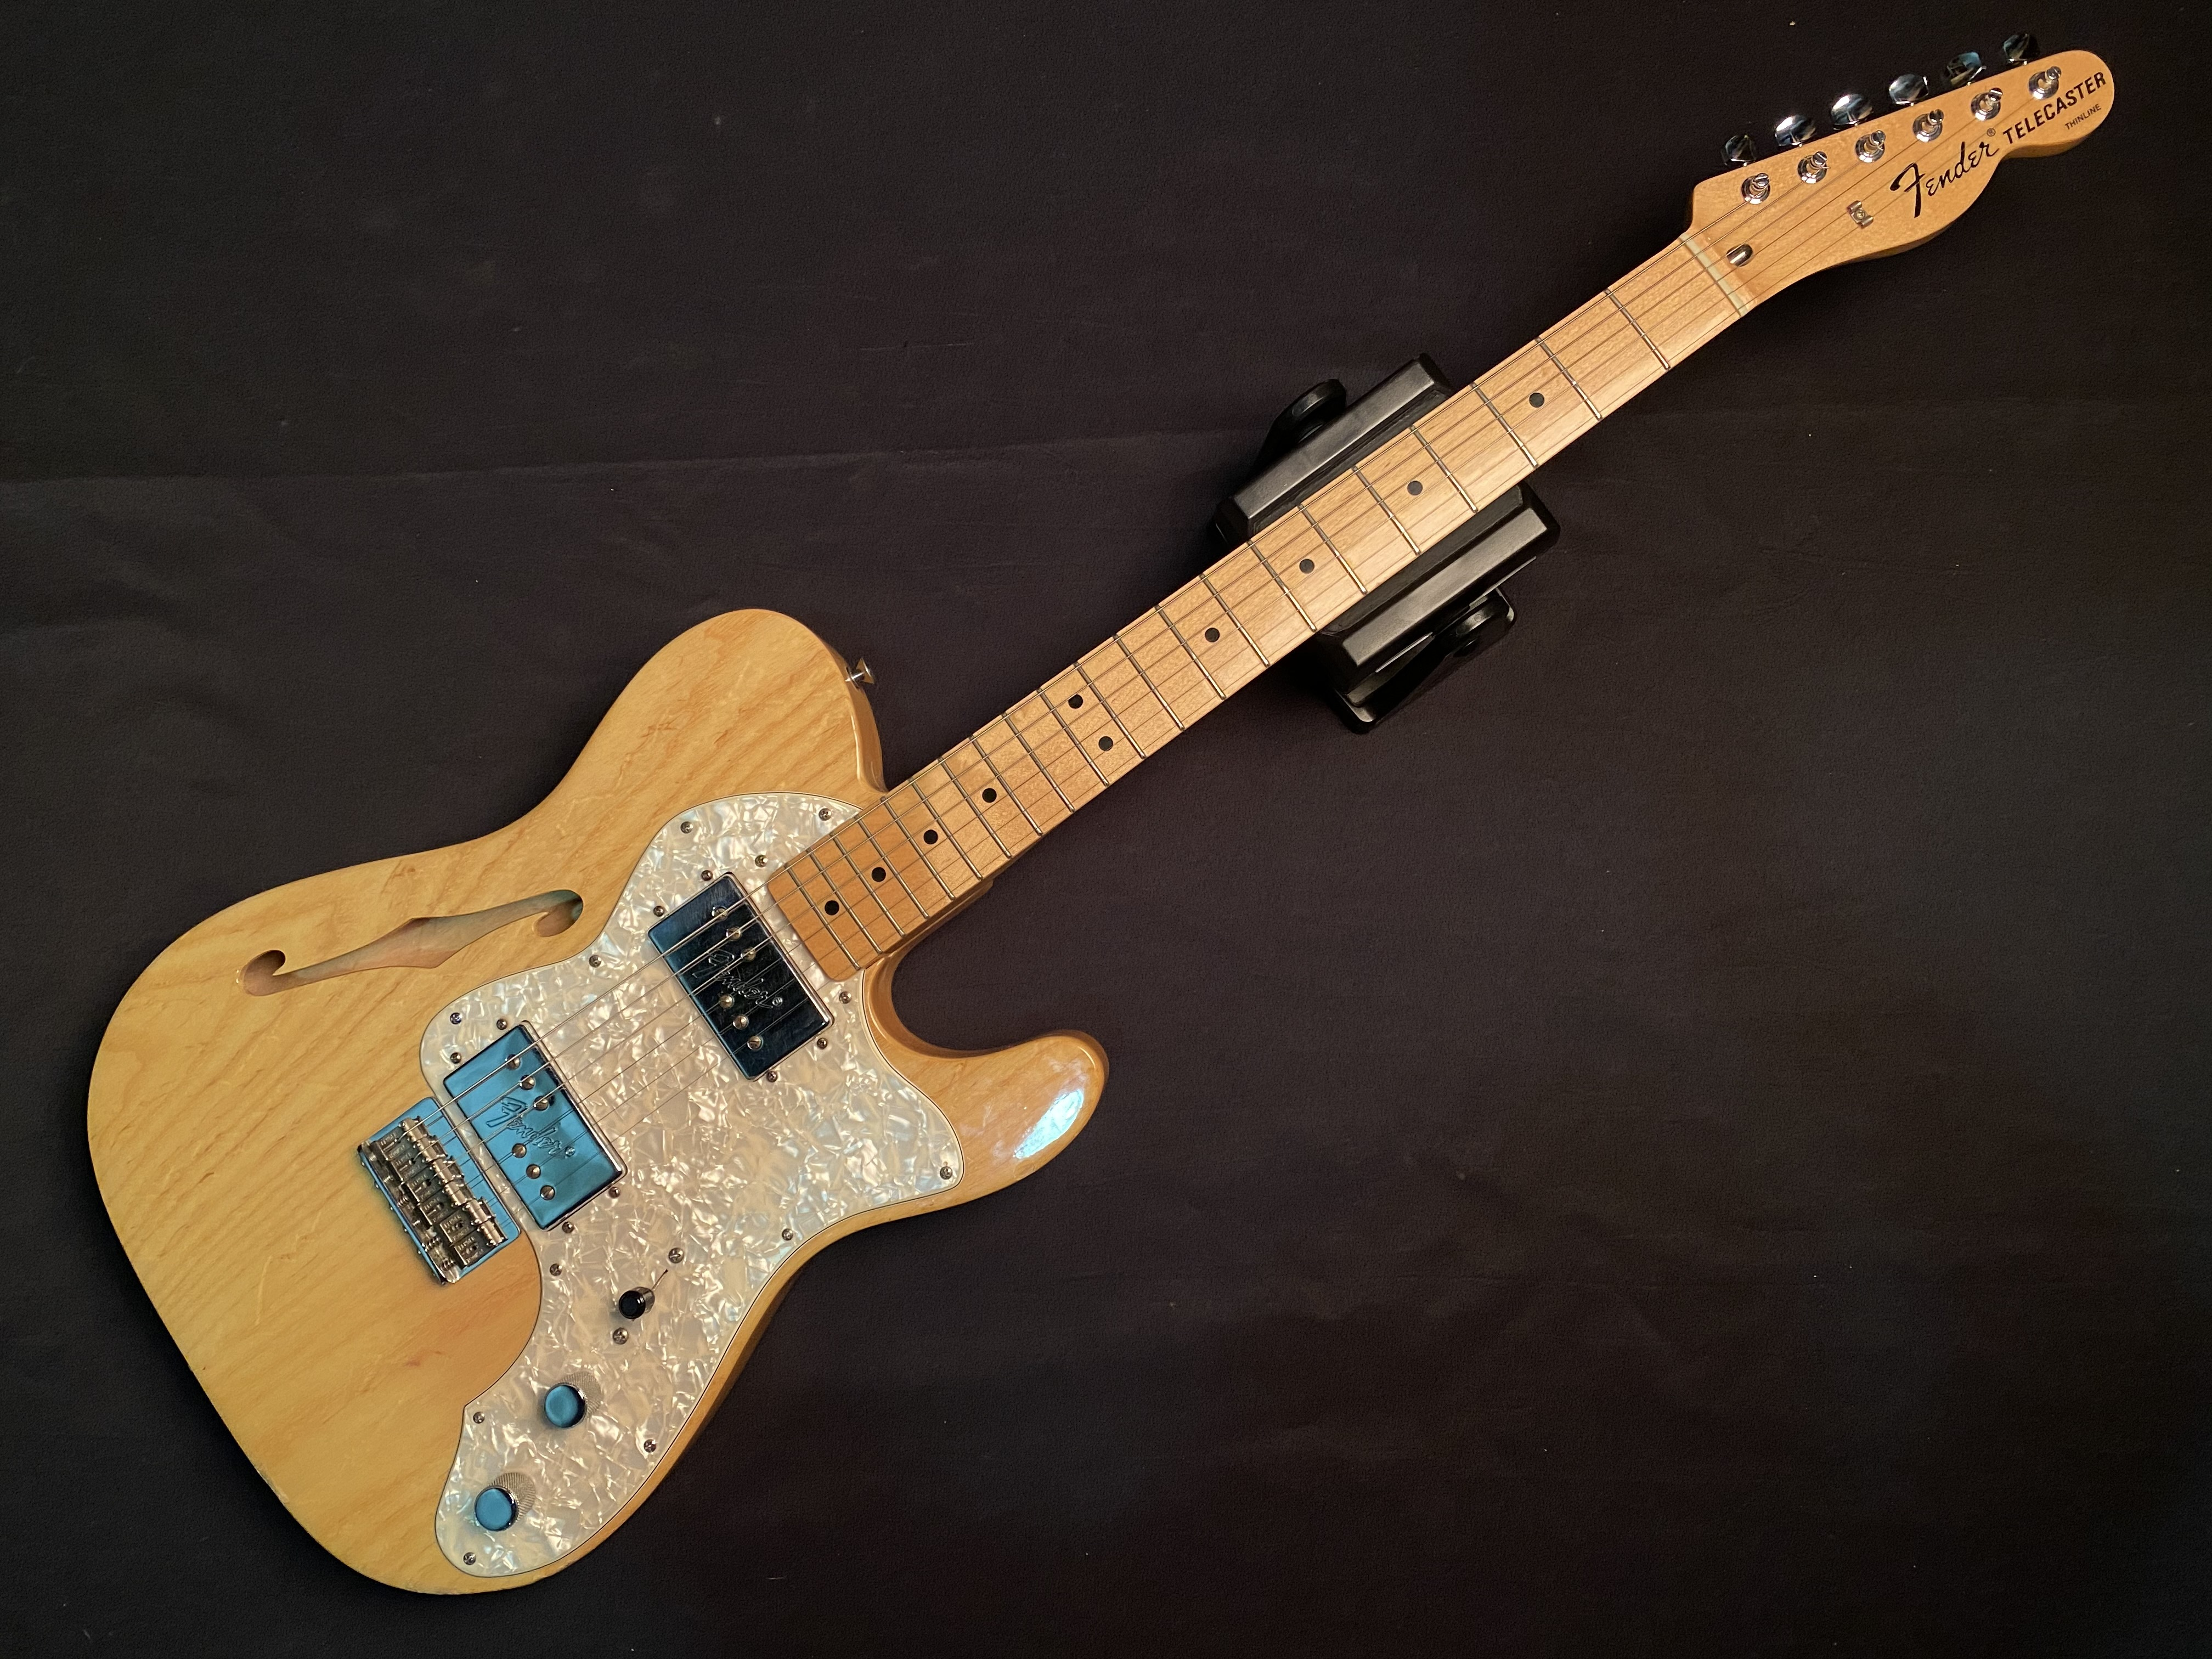 2003 MEXICAN FENDER - THINLINE TELECASTER - ELECTRIC GUITAR